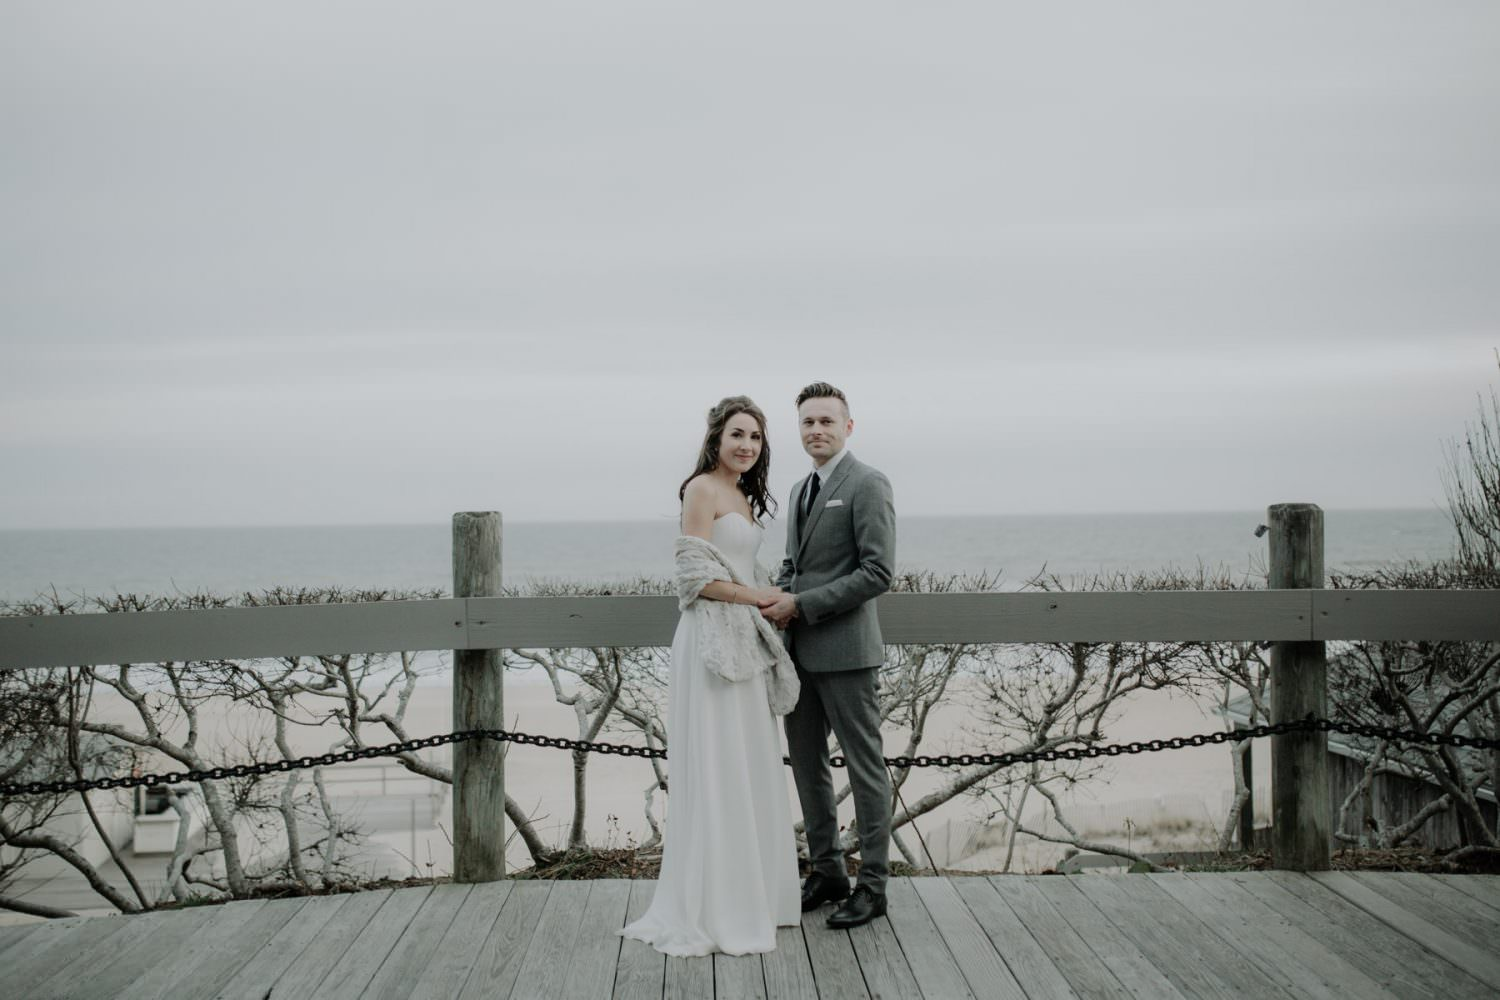 Bride and Groom posing looking at the camera with a beach setting